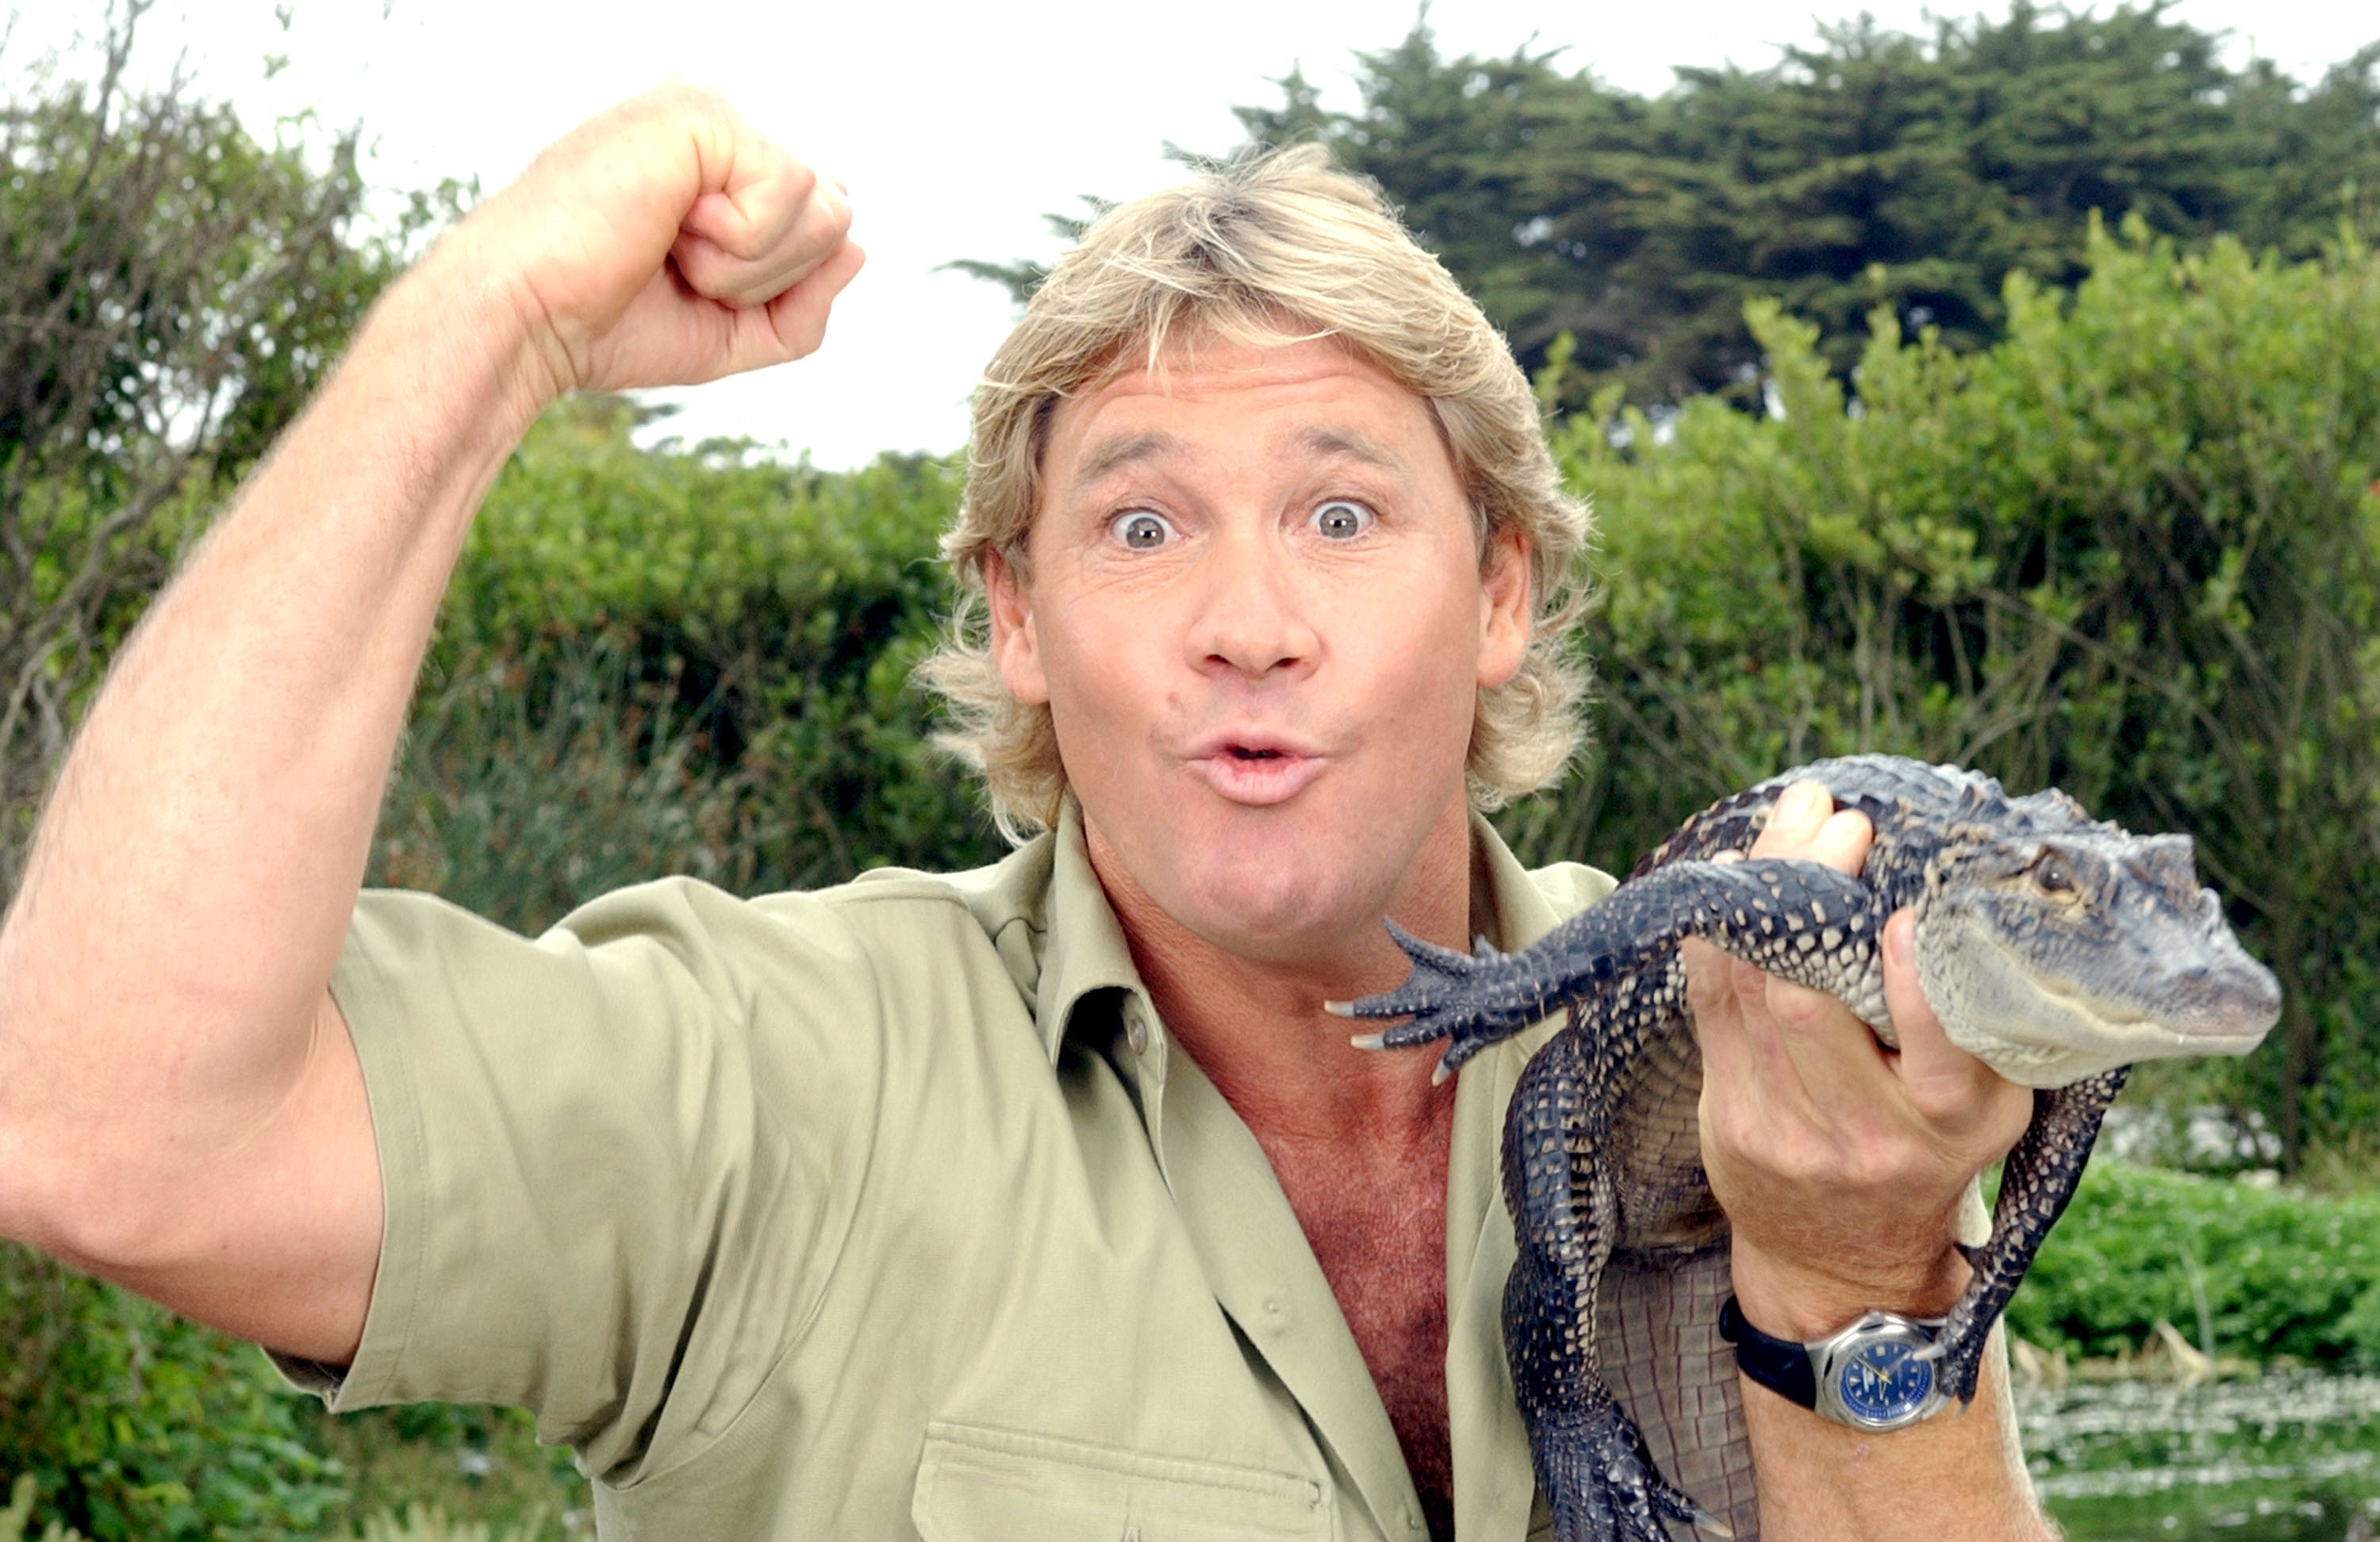 'The Crocodile Hunter', Steve Irwin, poses with a three foot long alligator at the San Francisco Zoo in San Francisco, California on June 26, 2002.